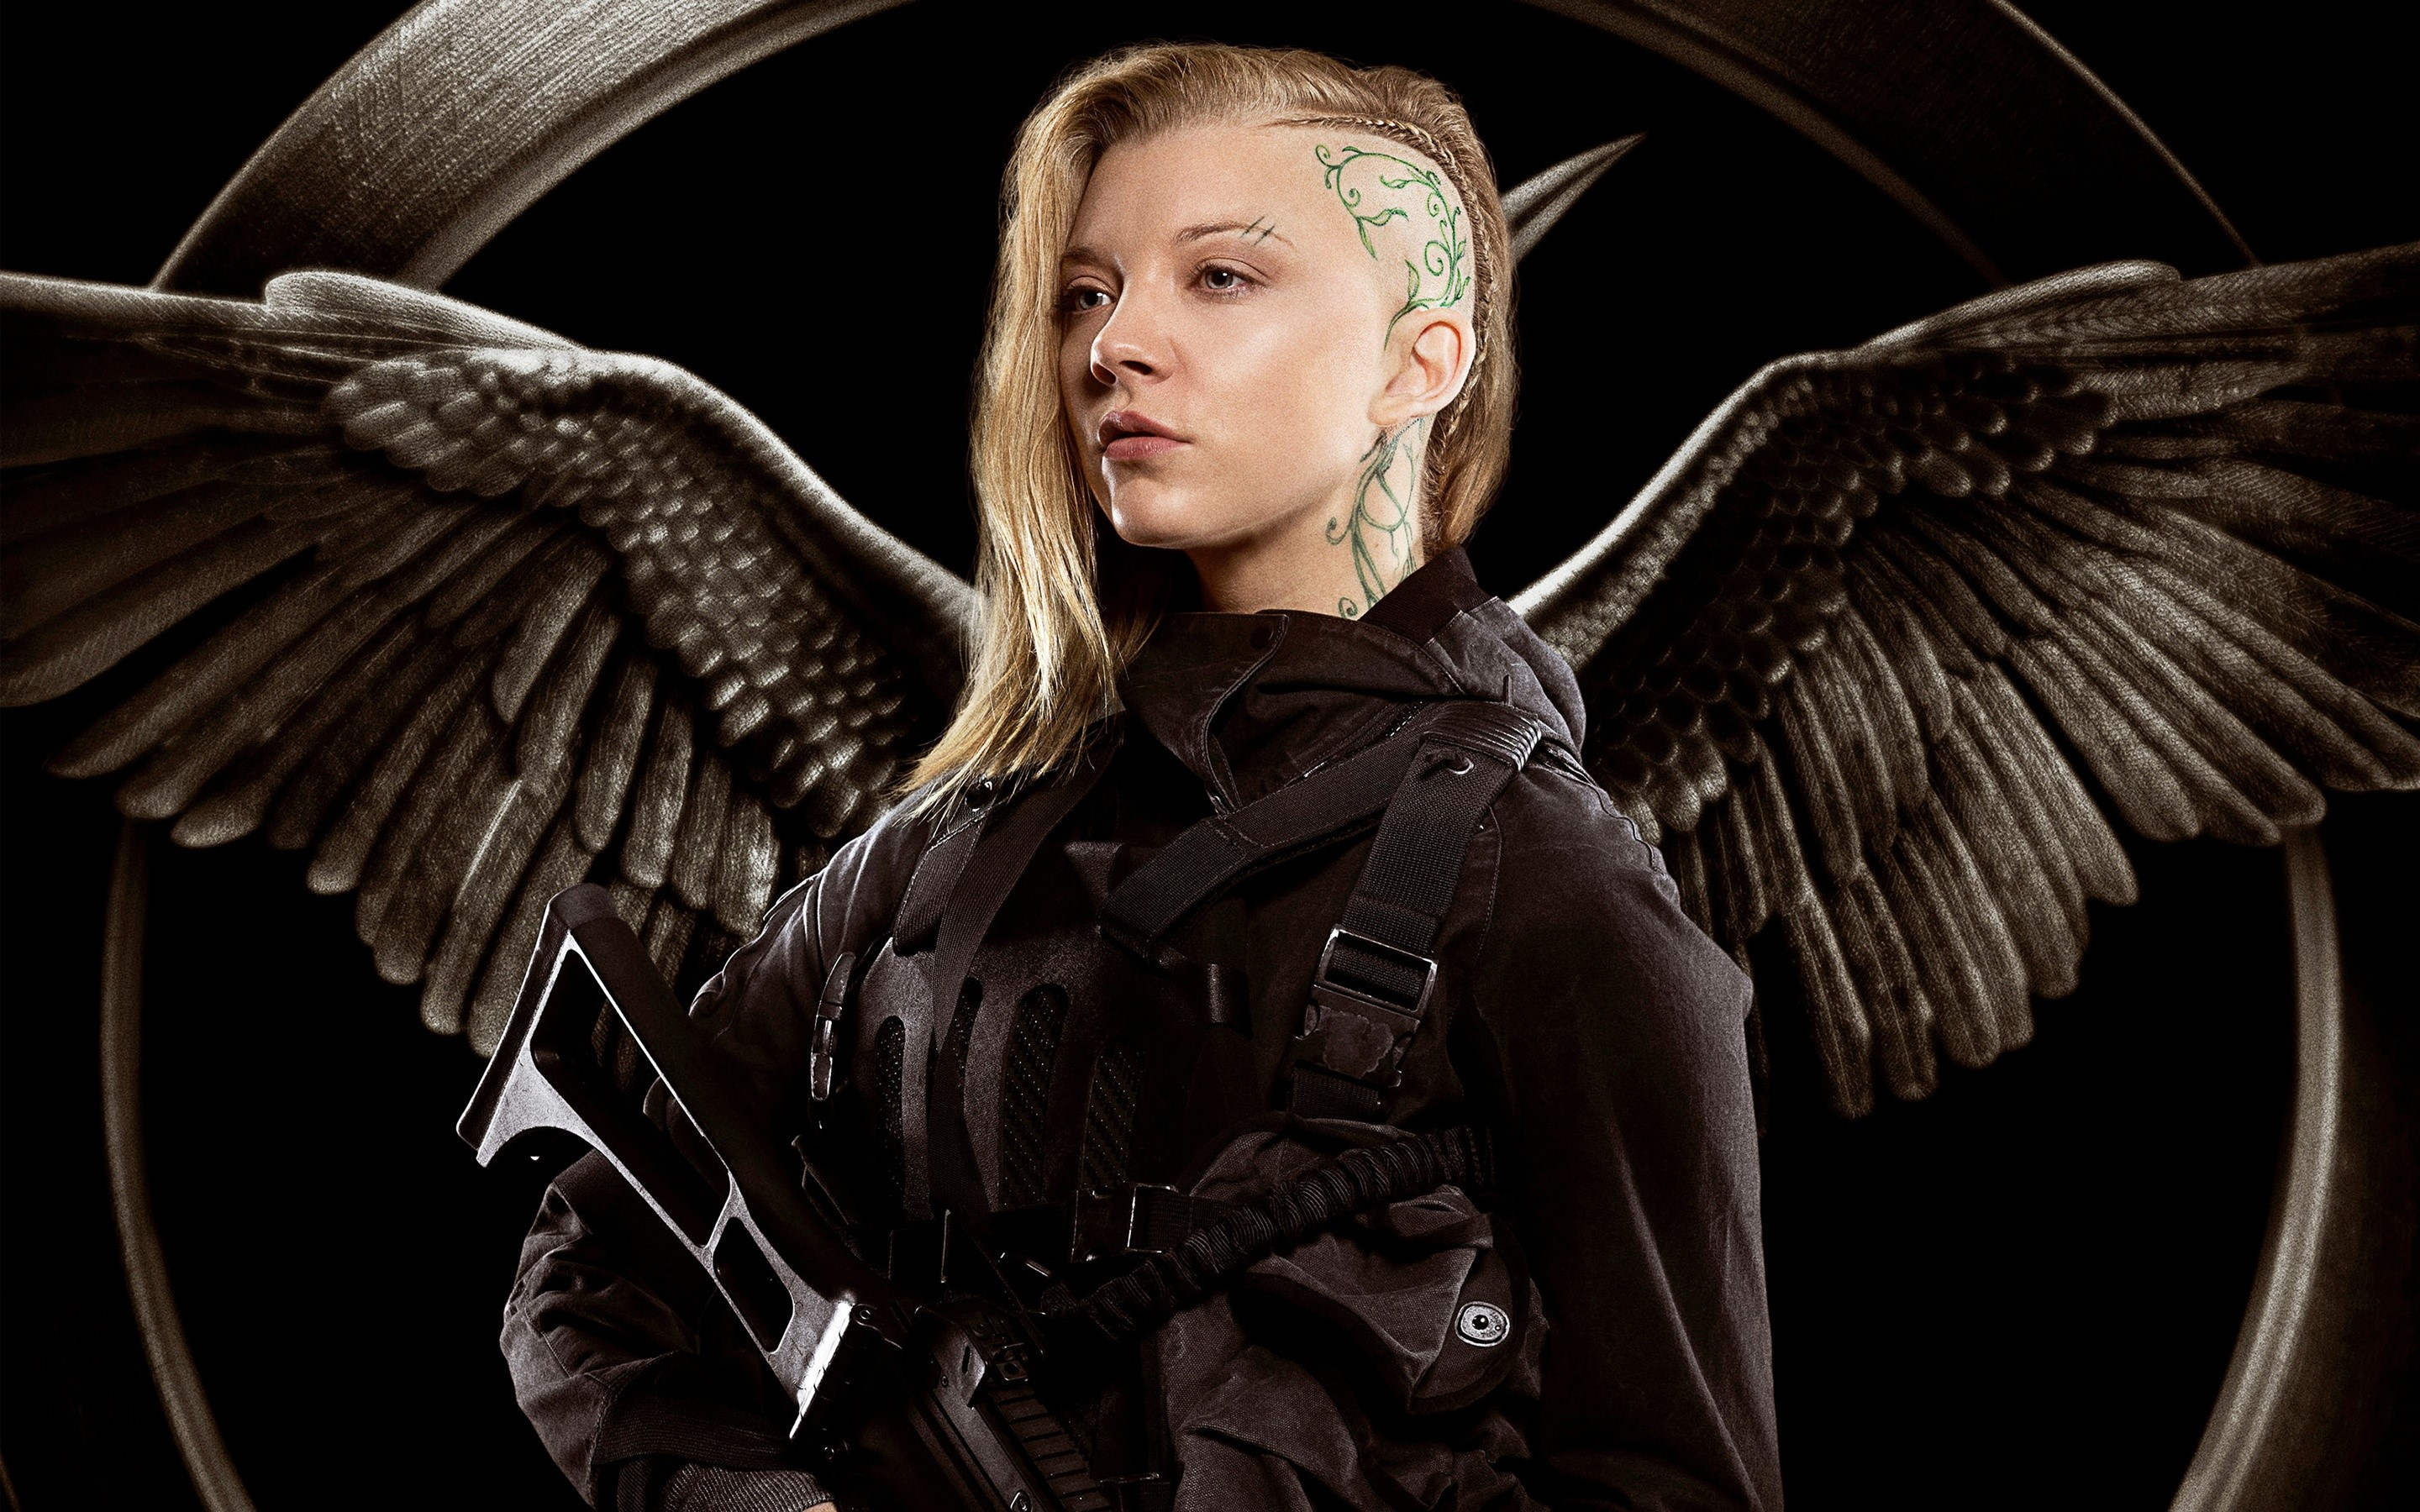 Wallpaper Natalie dormer as Cressida